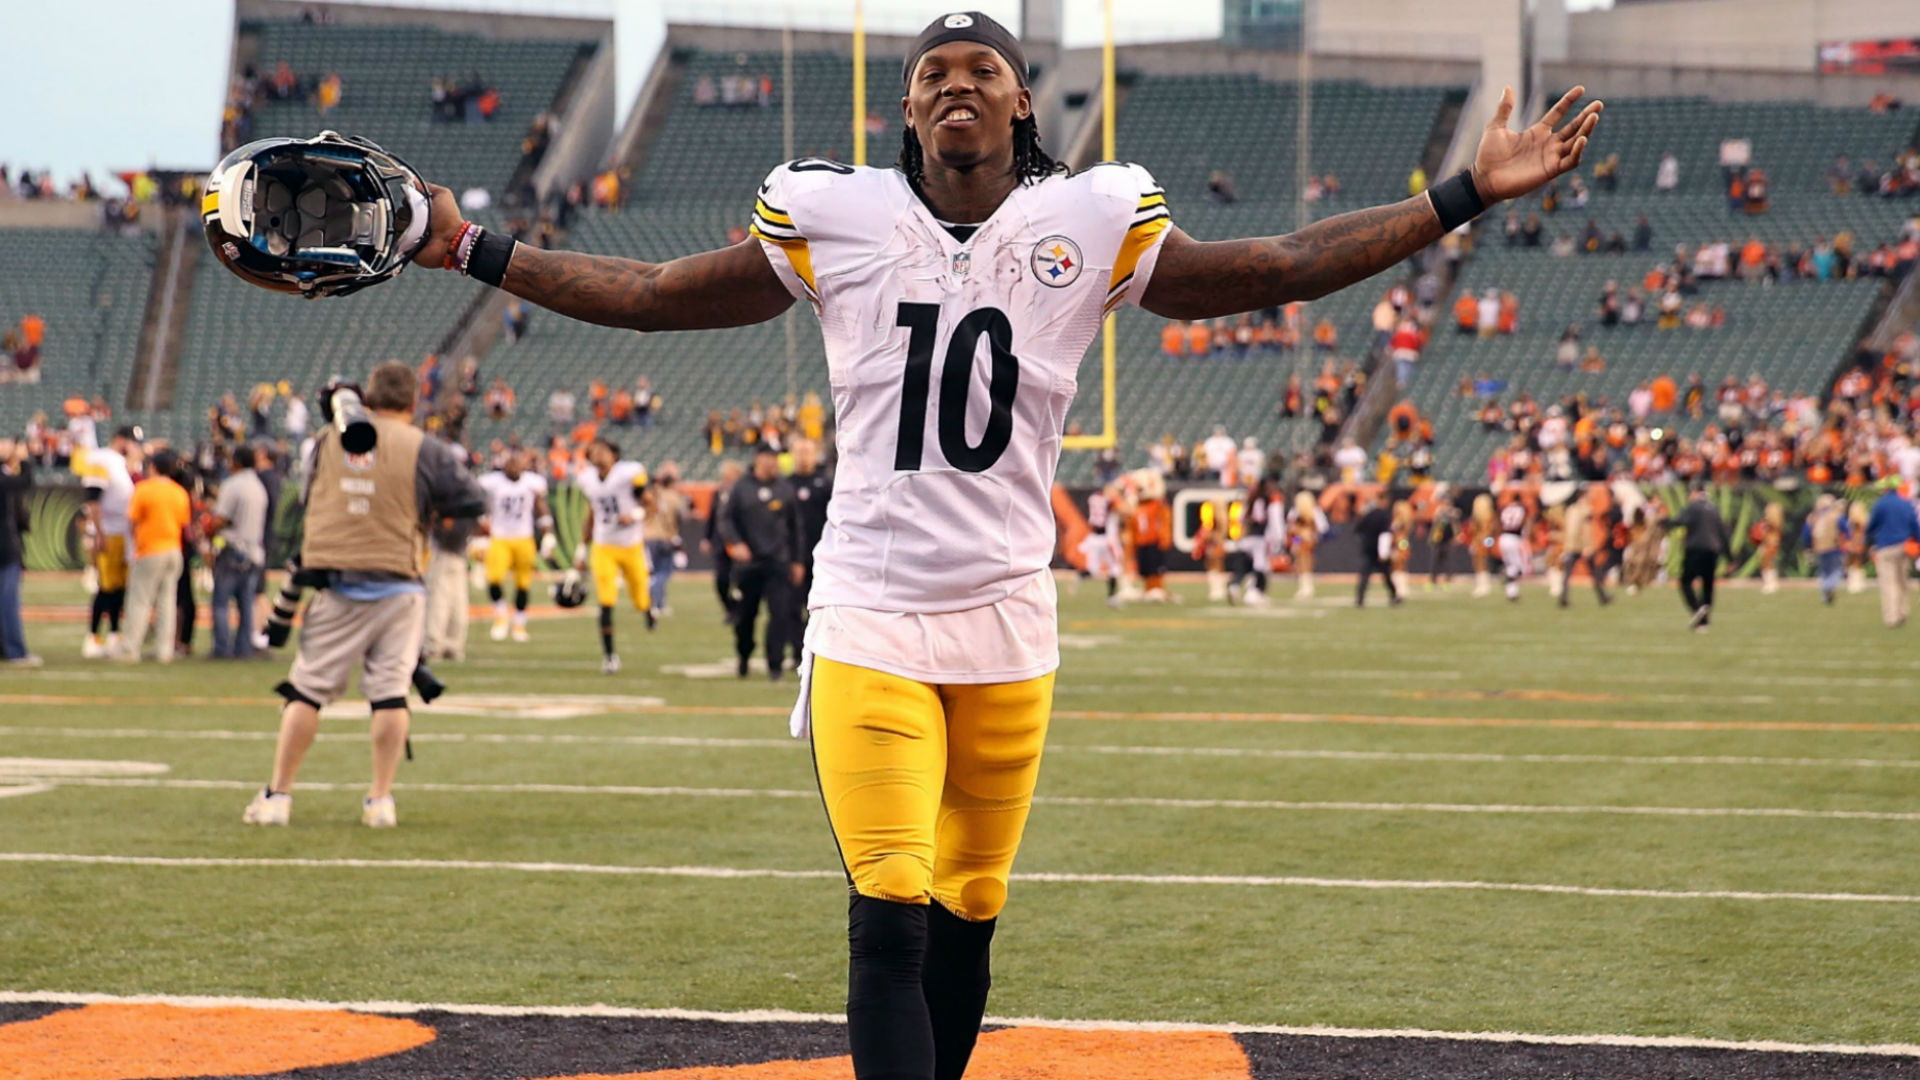 finest selection f10da 2aabf Steelers trade Martavis Bryant to Raiders | Sporting News